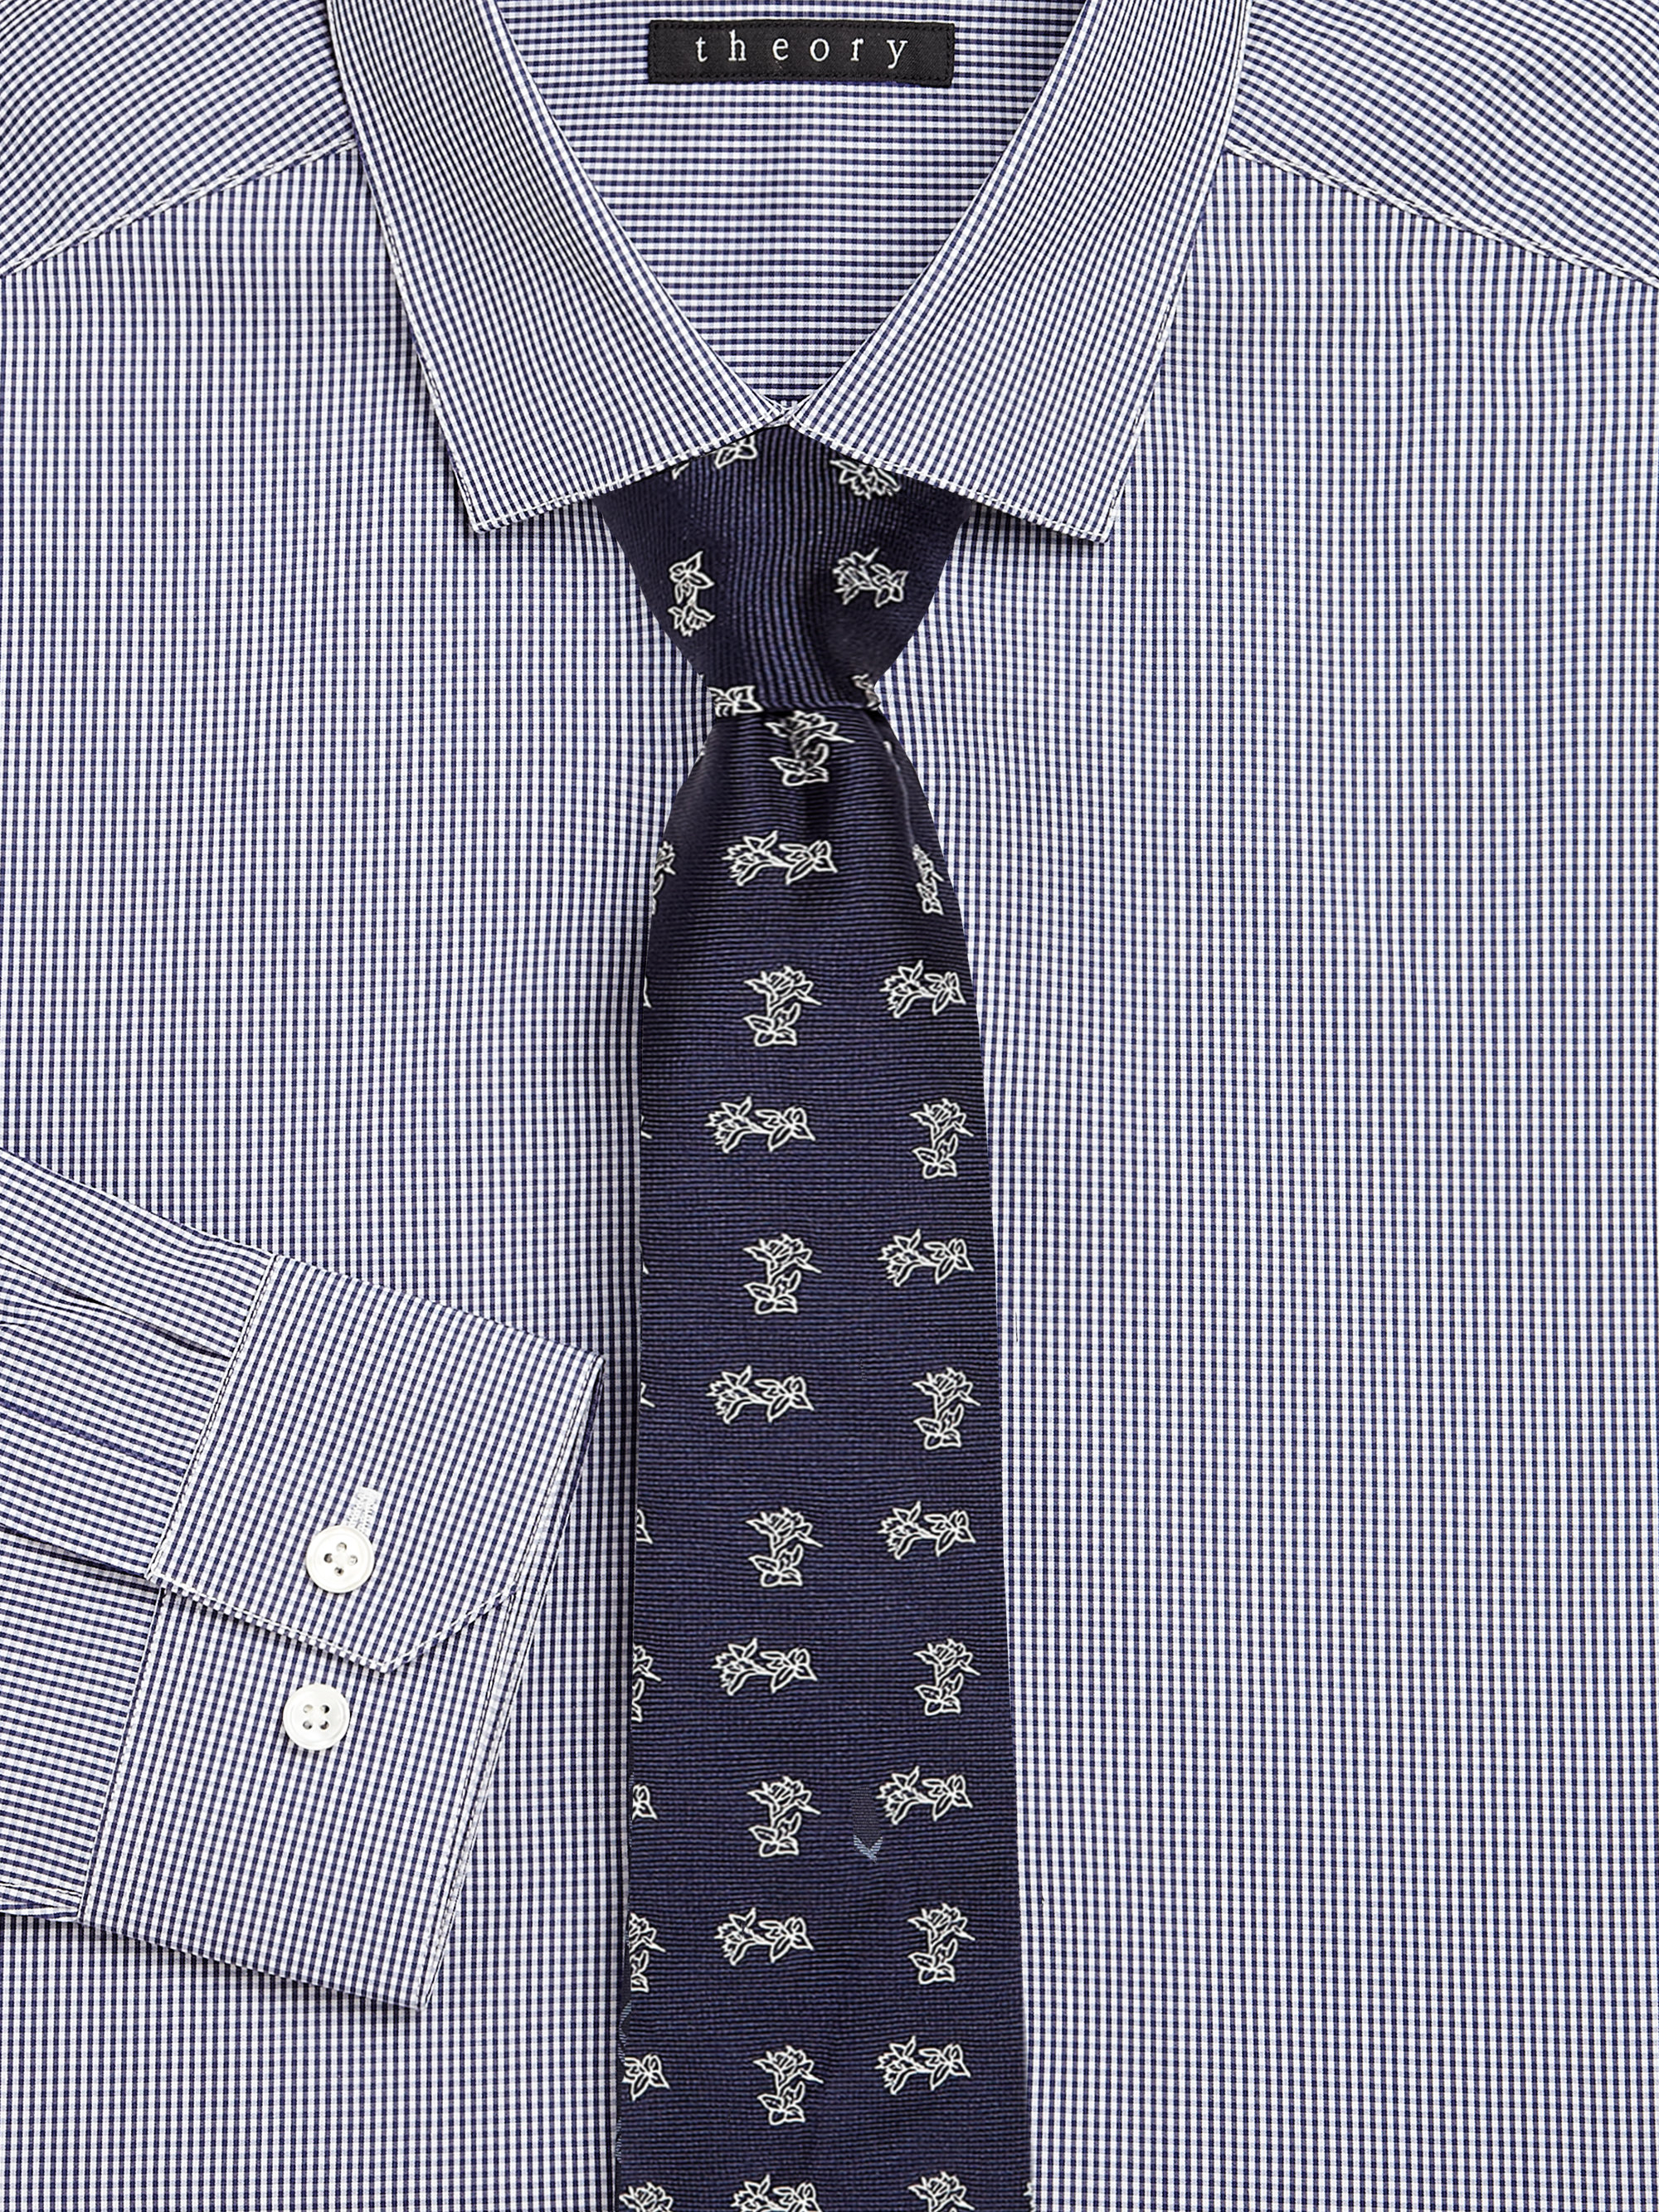 Theory Roadster Tonal Check Skinny Tie Navy One Size